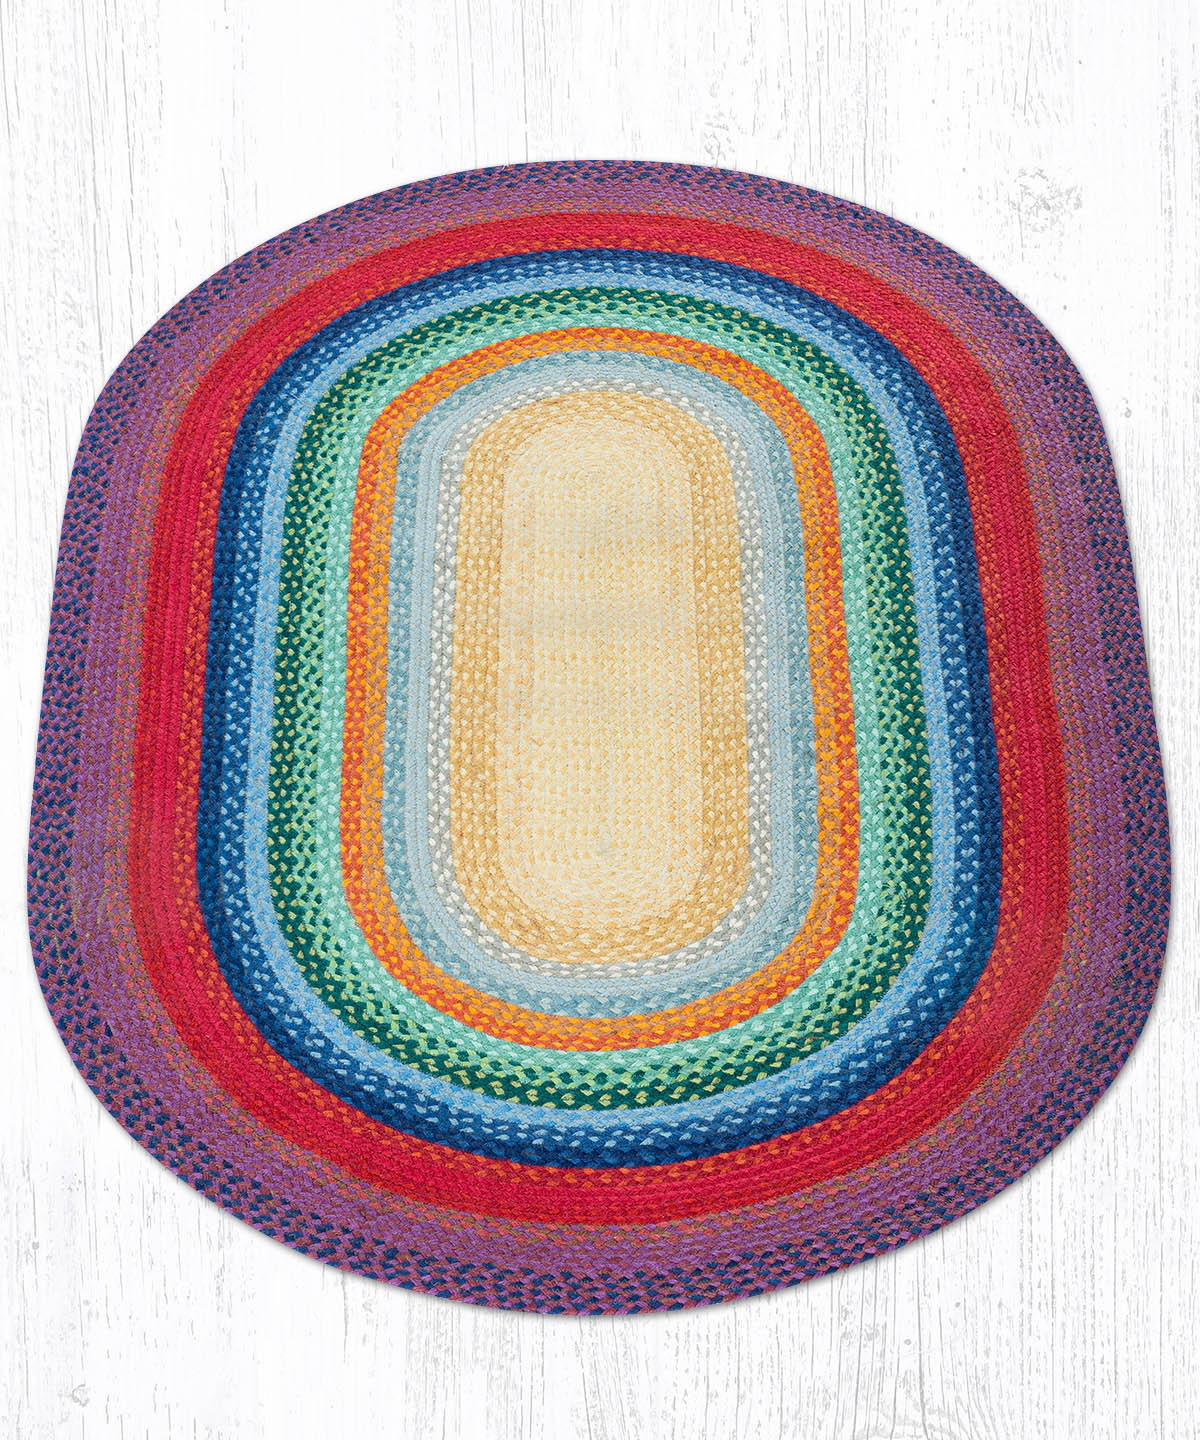 C-400 Rainbow 1 Oval Braided Rug 4'x6'